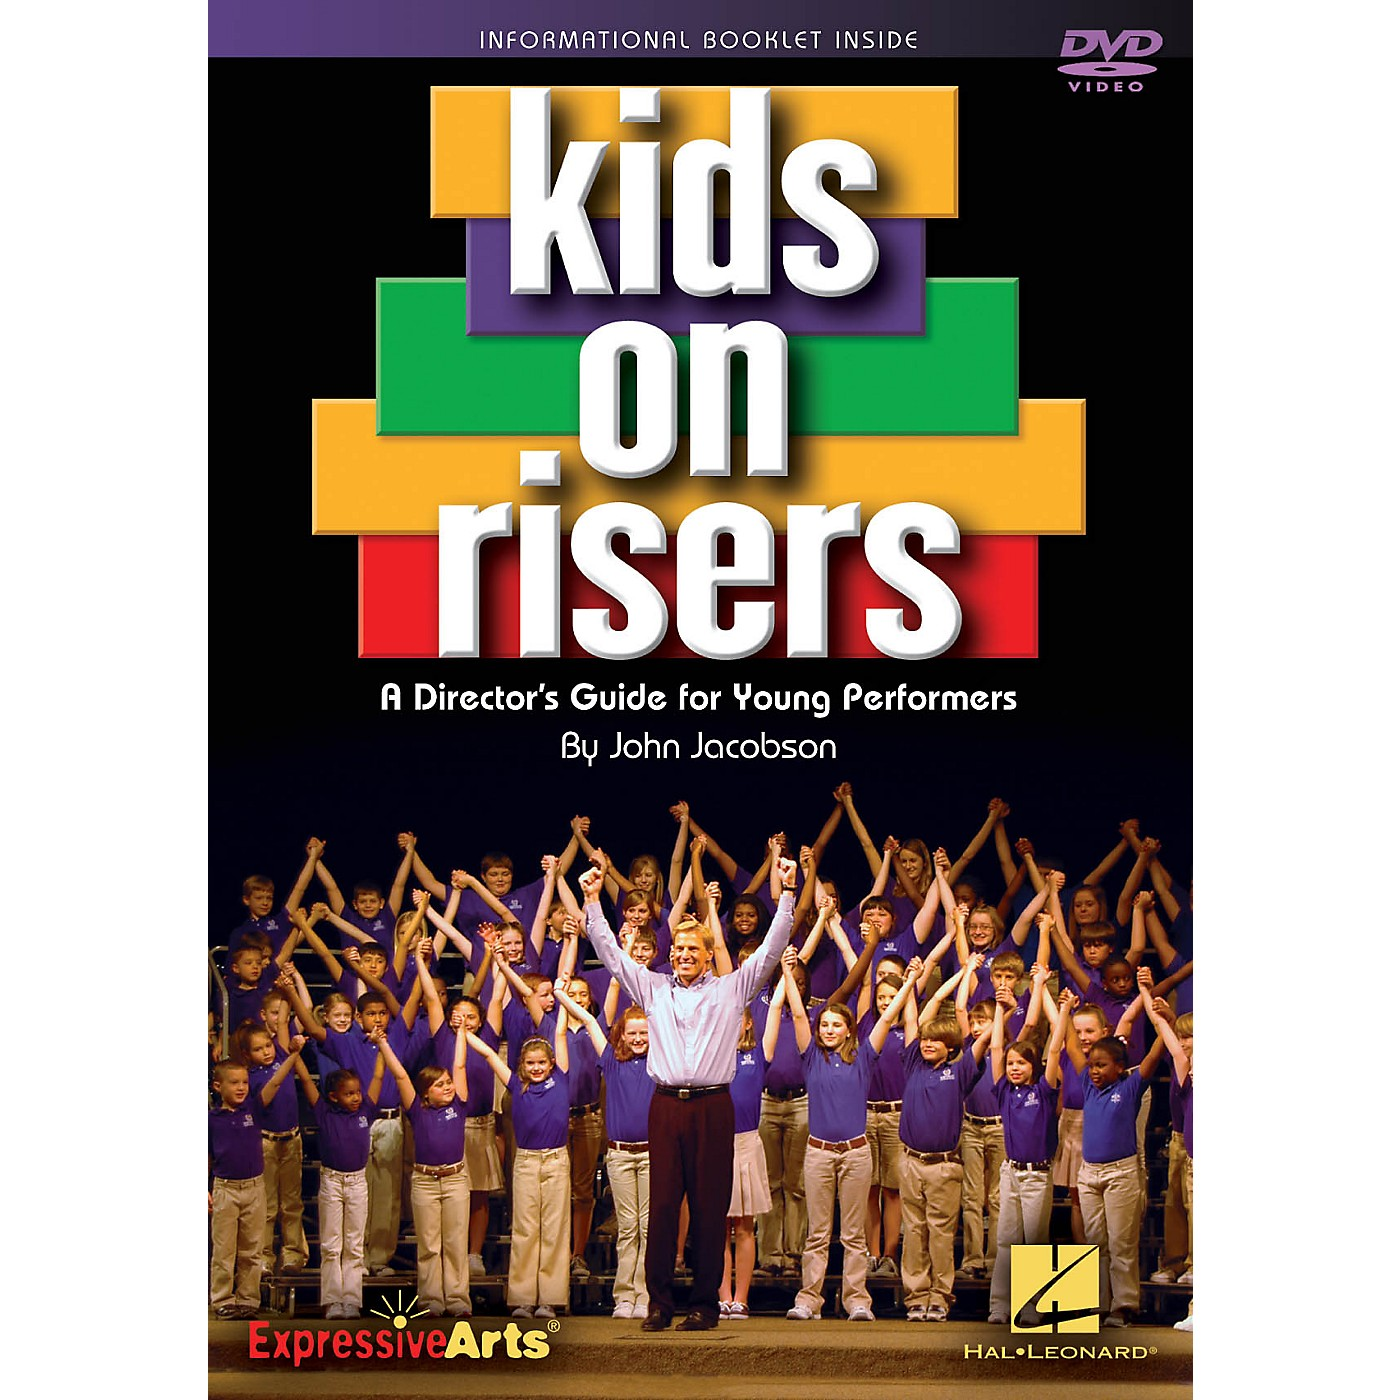 Hal Leonard Kids on Risers (A Director's Guide for Young Performers) DVD with enclosed booklet by John Jacobson thumbnail